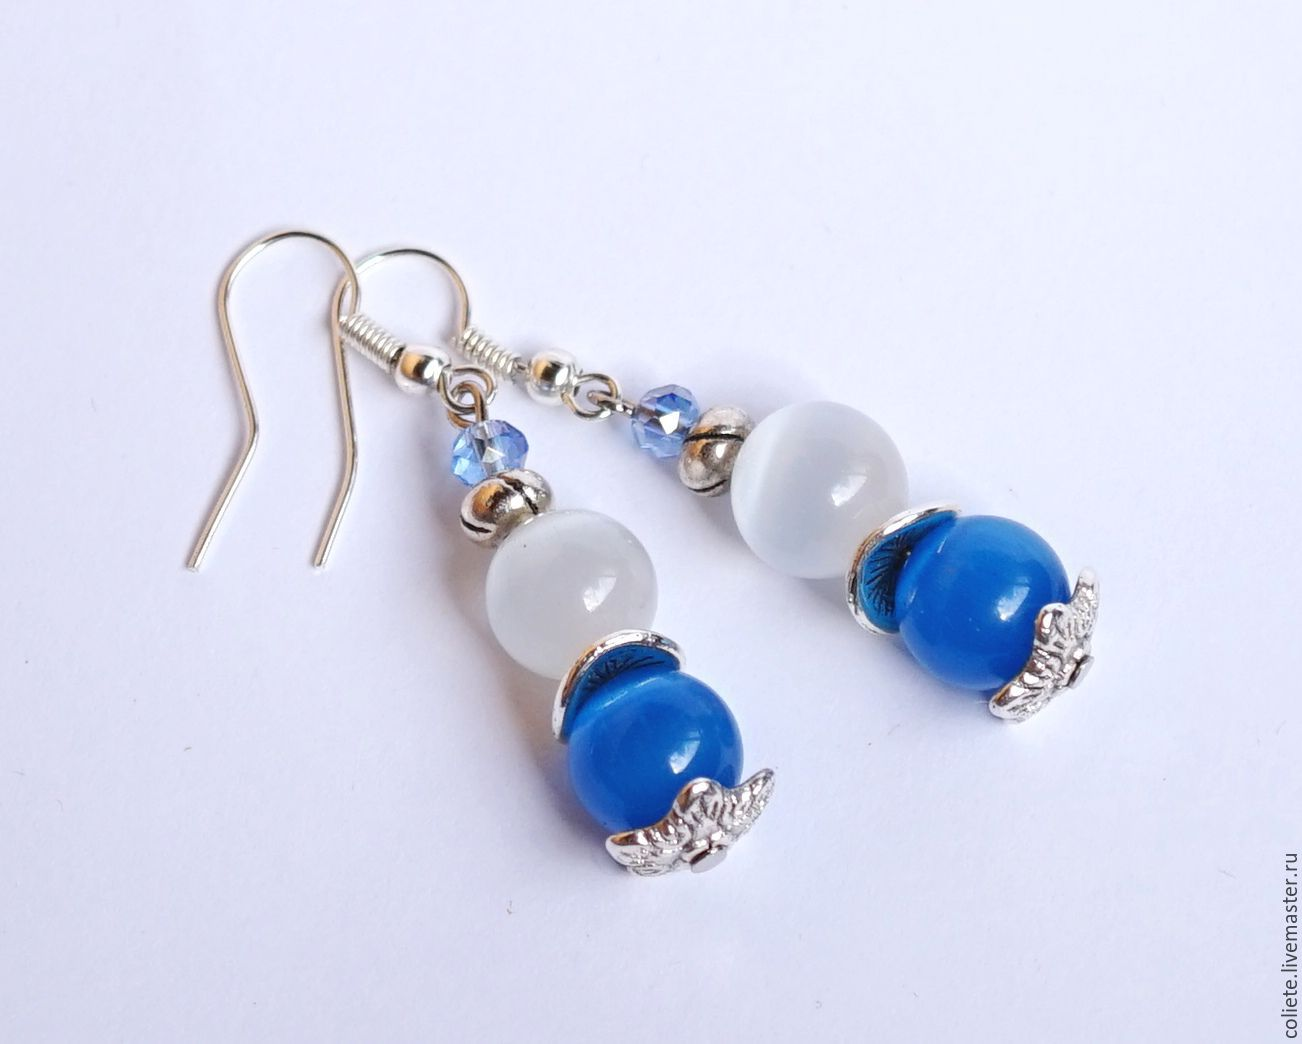 Earrings Handmade Livemaster From Natural Stones Hy Case